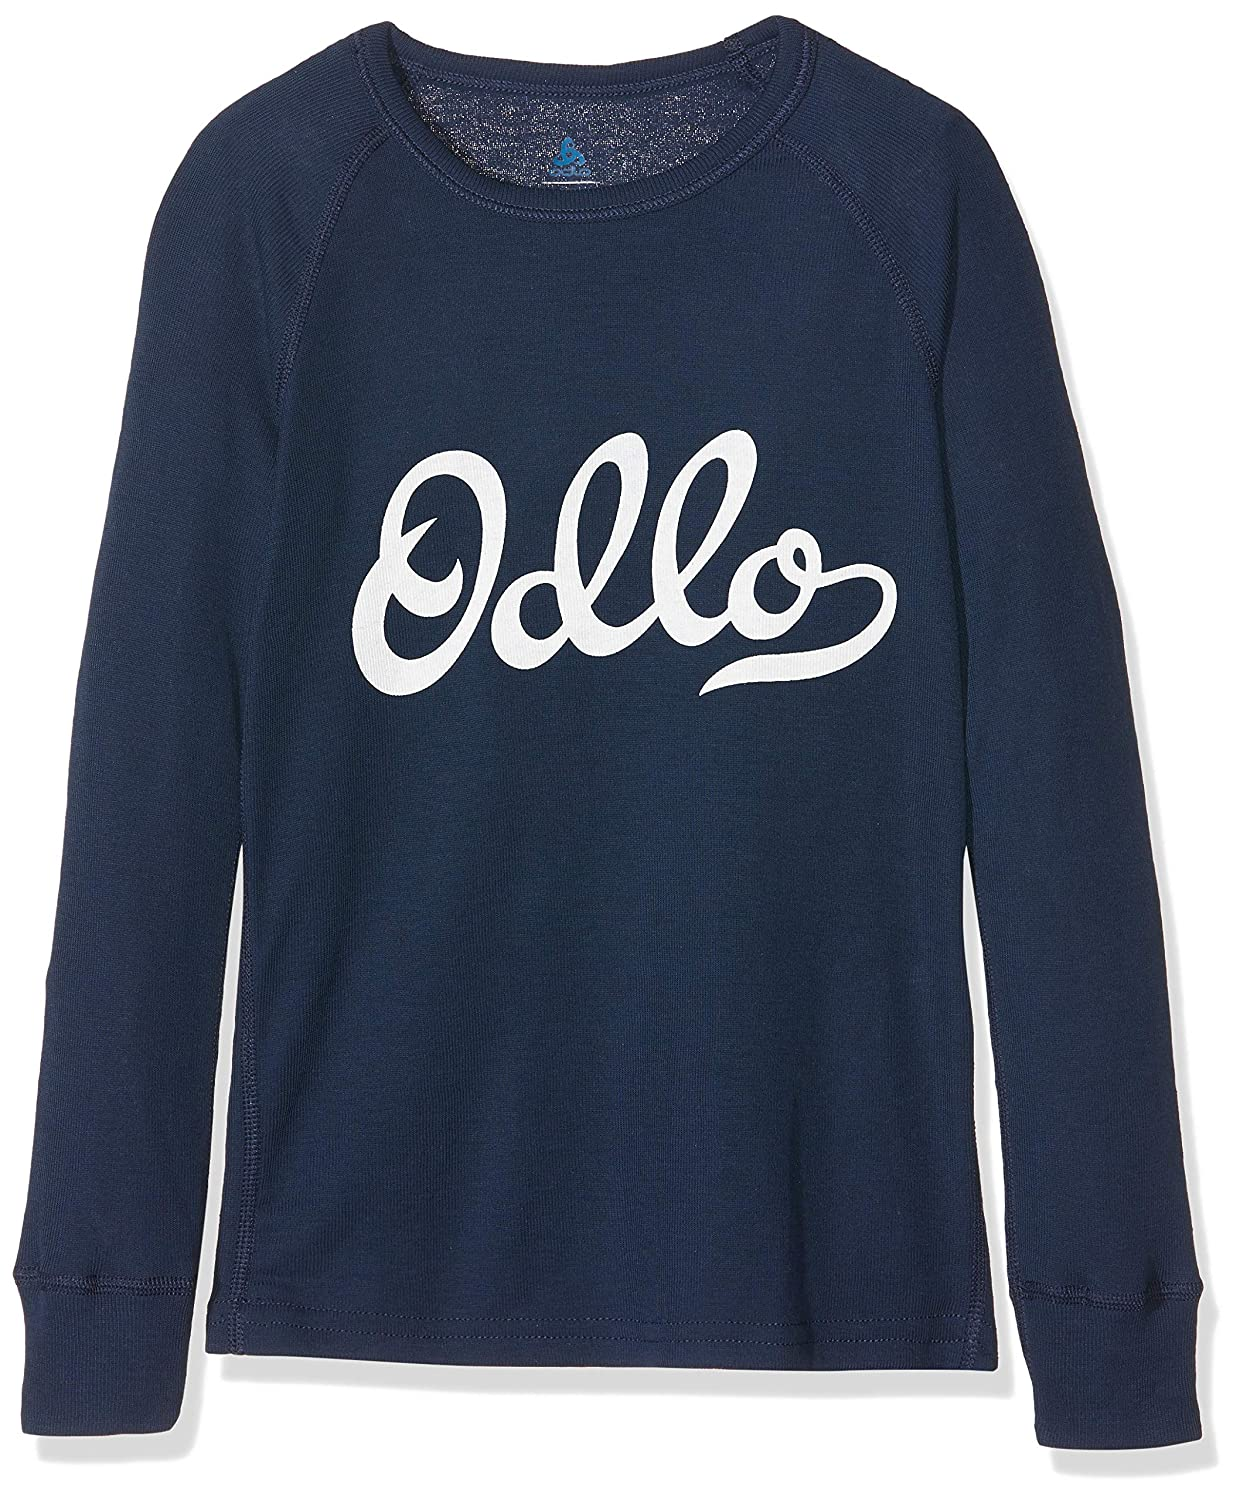 Intimo-Bambino Unisex Odlo Bl Top Crew Neck L//S Active Warm Kids-Diving Navy